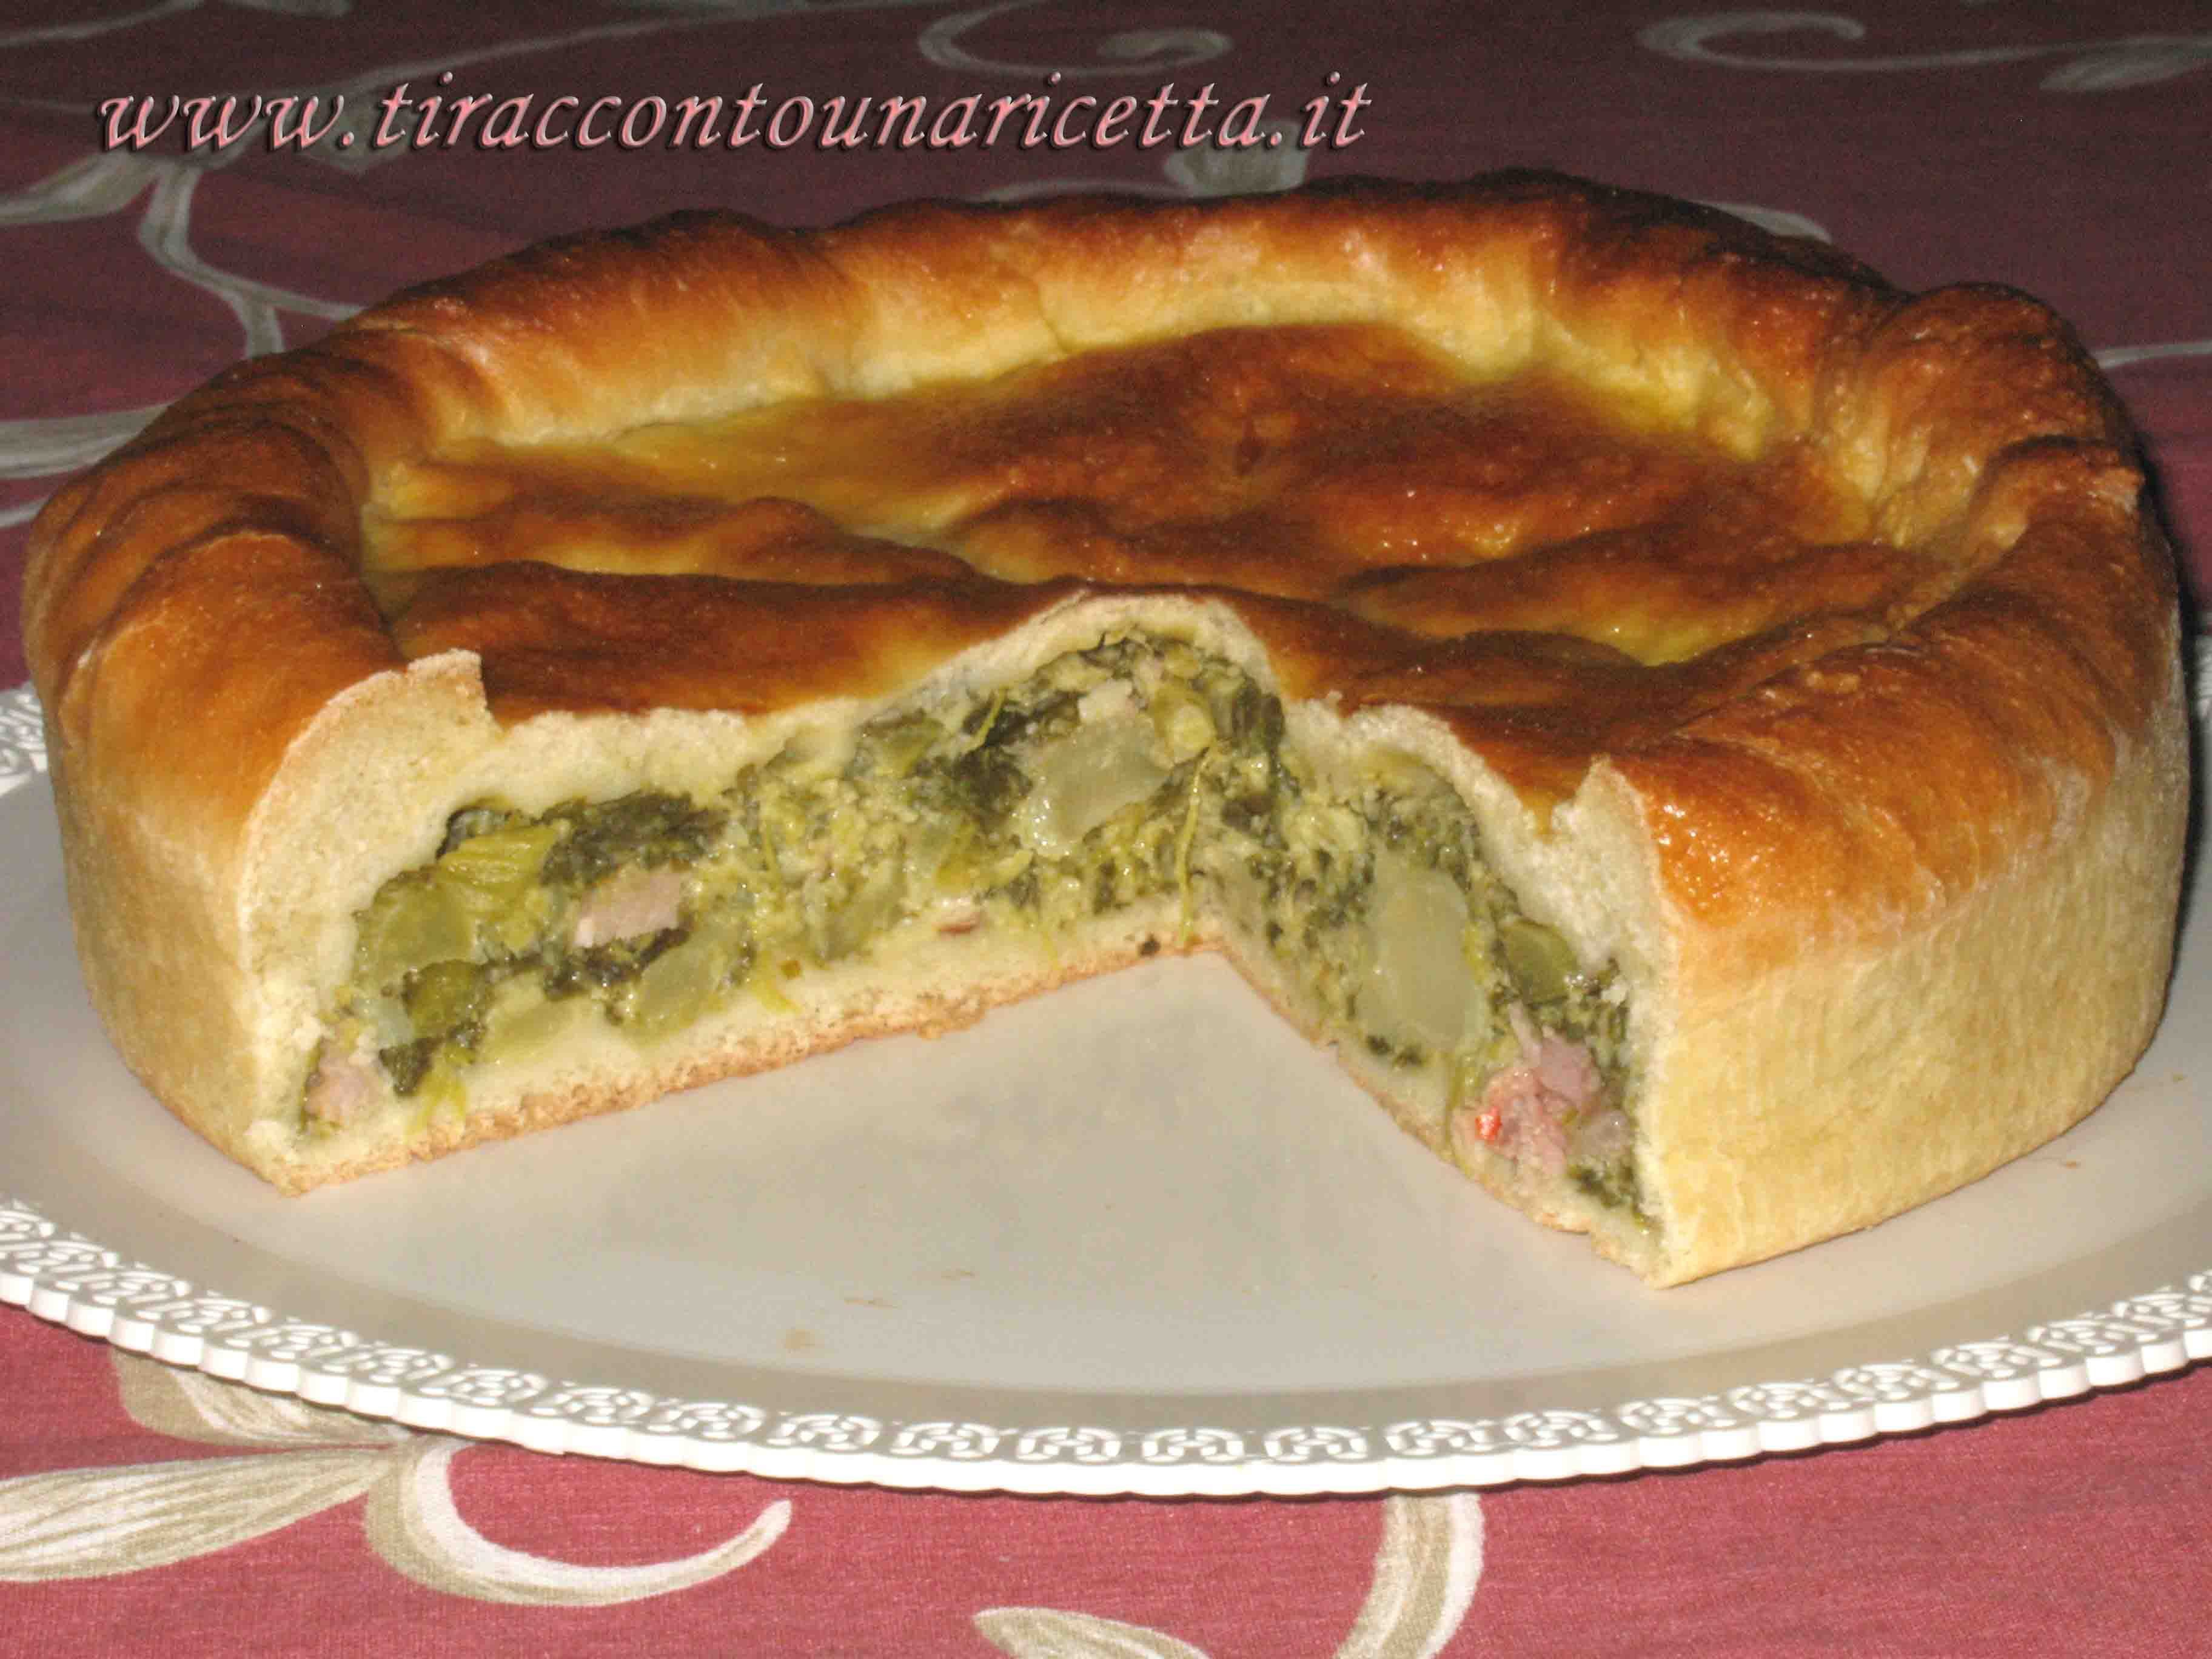 Rustic pie with broccoli, broccoletti and sausage